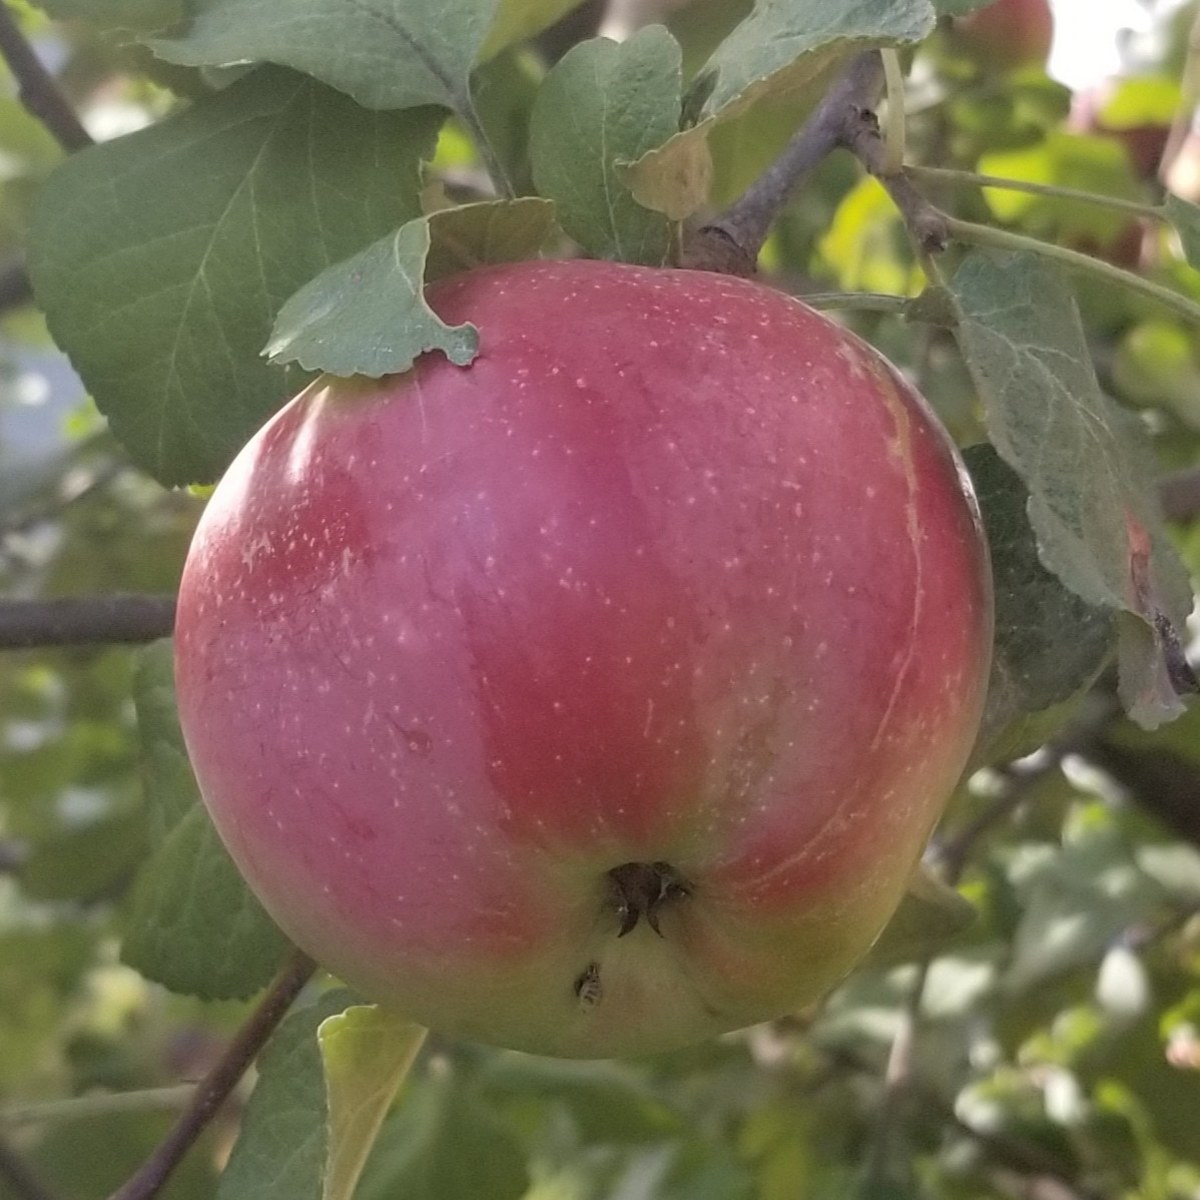 Ripe apple hanging from the branch of a tree in my neighbor's front yard. Very inspiring for both writing and baking in New  England as fall approaches.